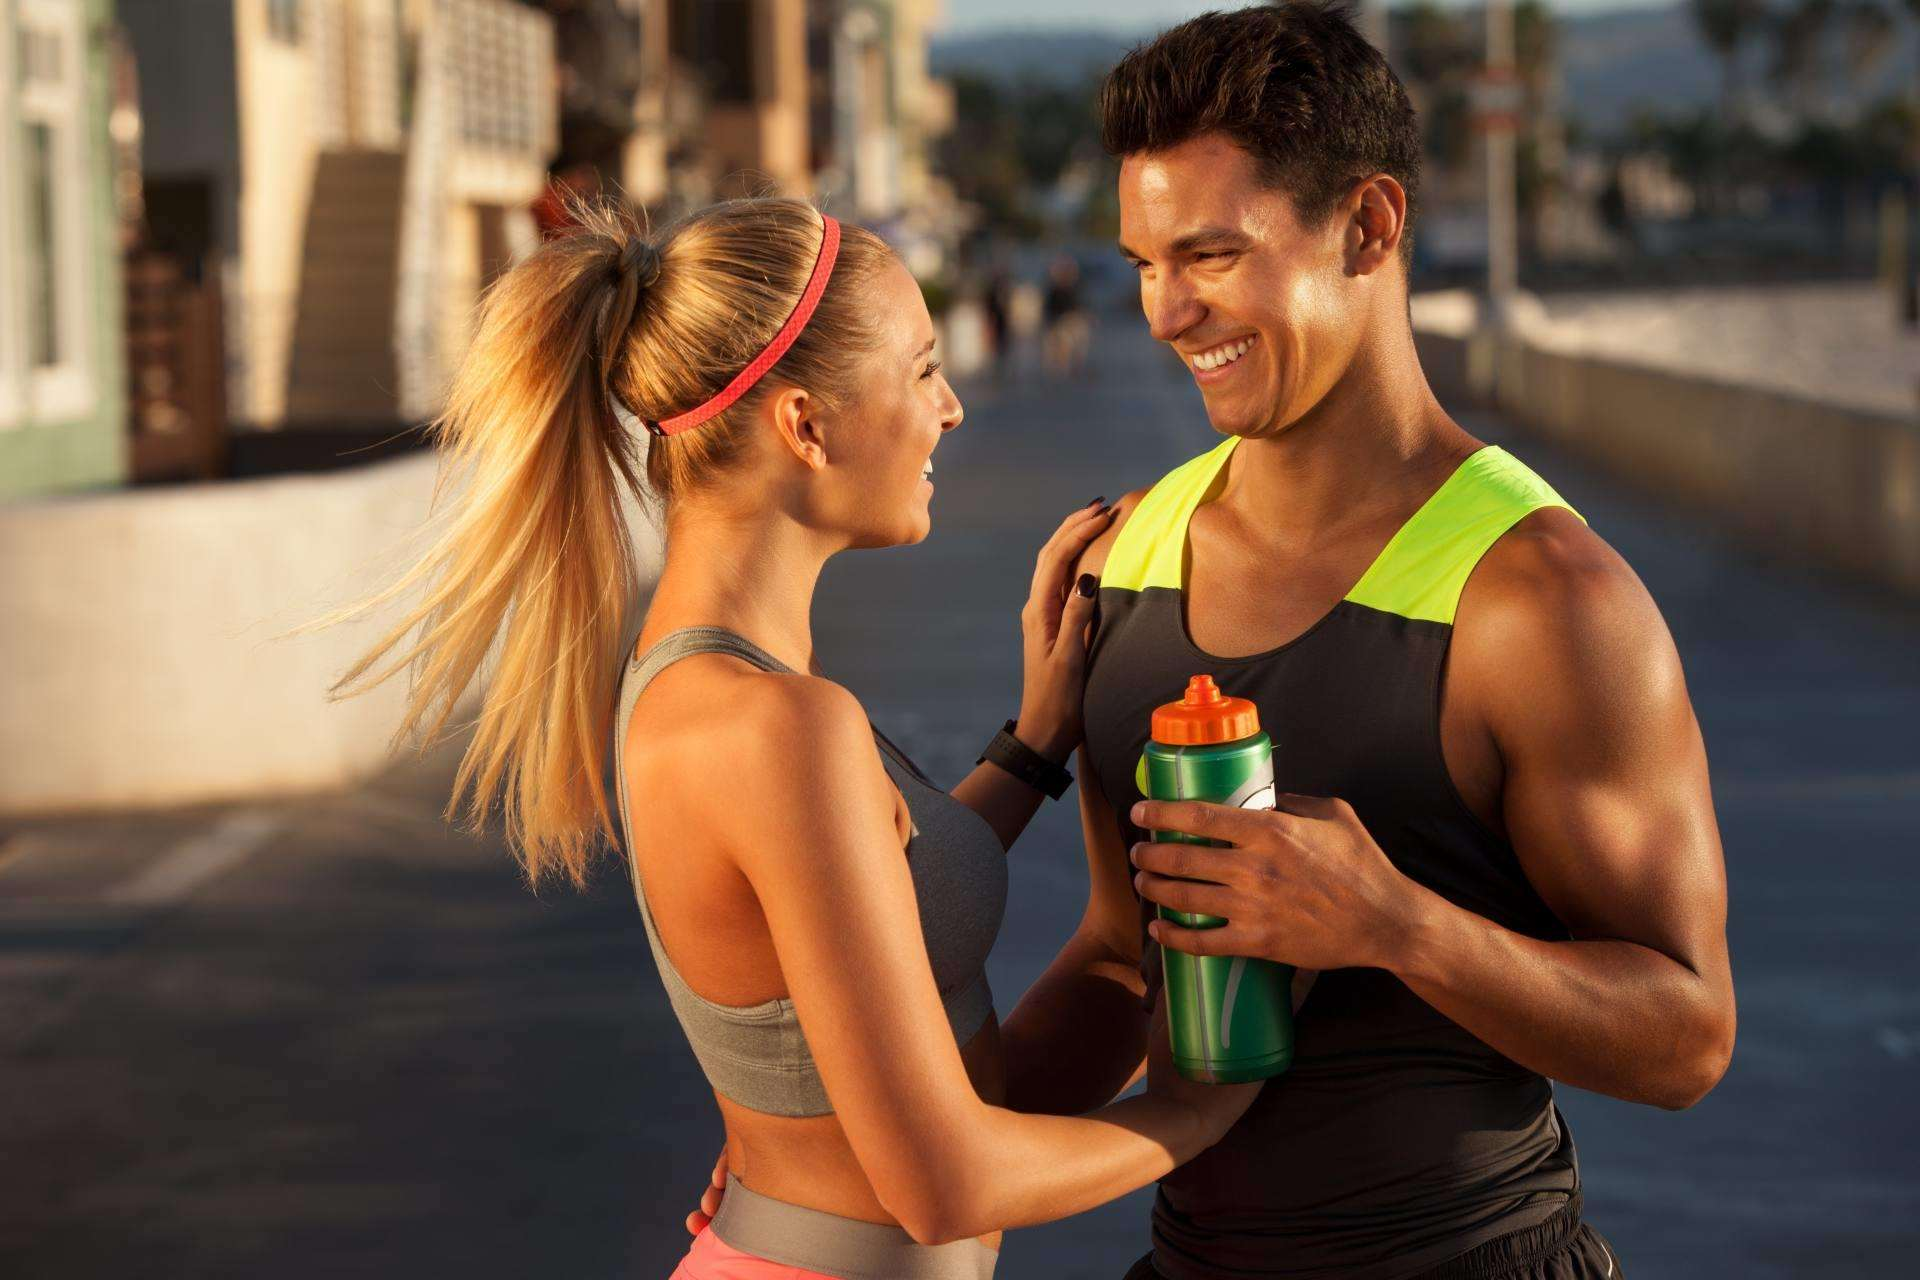 Busting Fitness & Nutrition Myths, Busting fitness myths man and woman training%, guest-dads%